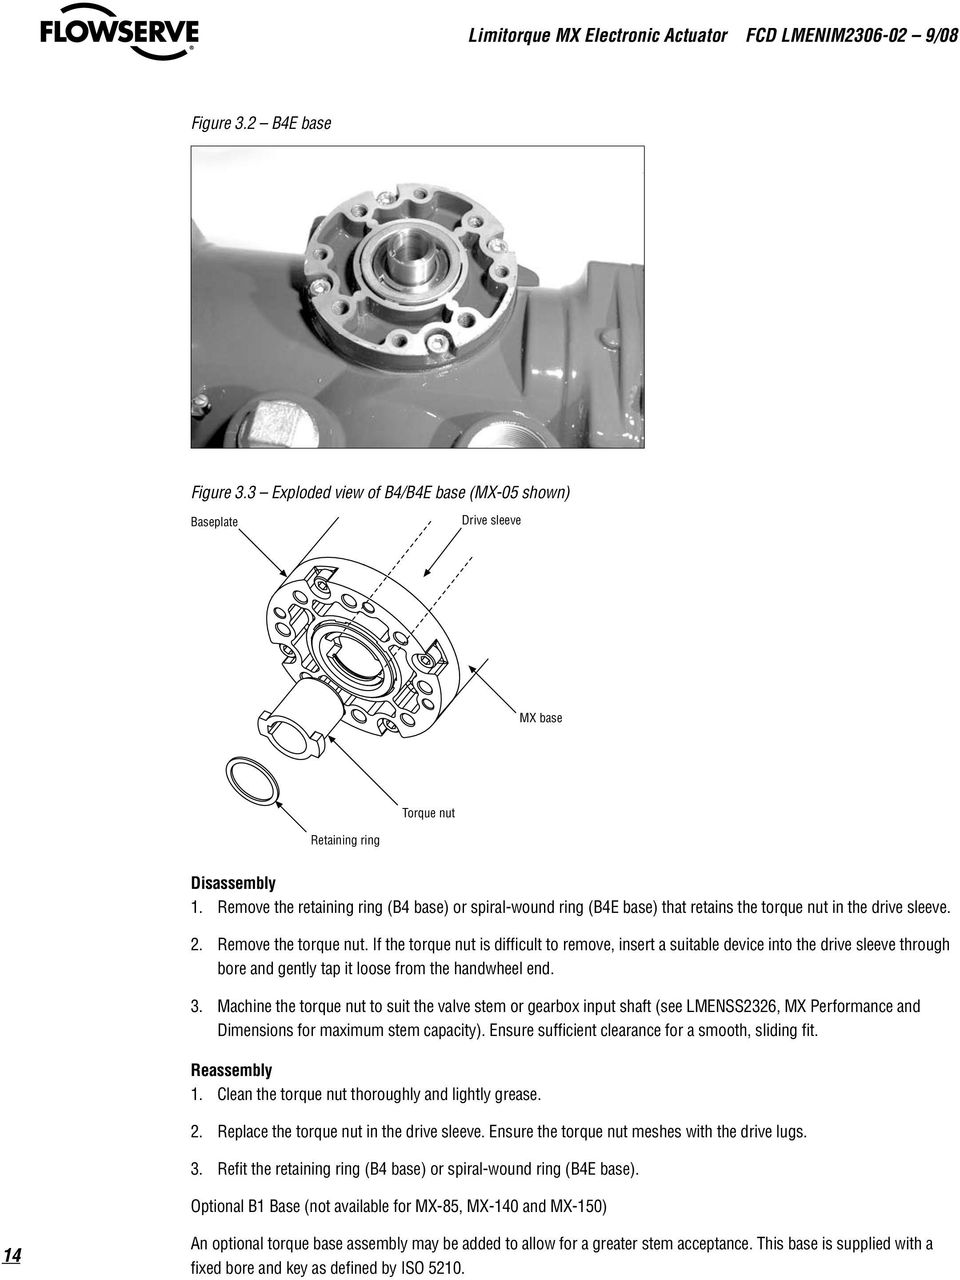 User Instructions Limitorque Mx Electronic Actuator Installation Mxa 20 Wiring Diagram If The Torque Nut Is Difficult To Remove Insert A Suitable Device Into Drive